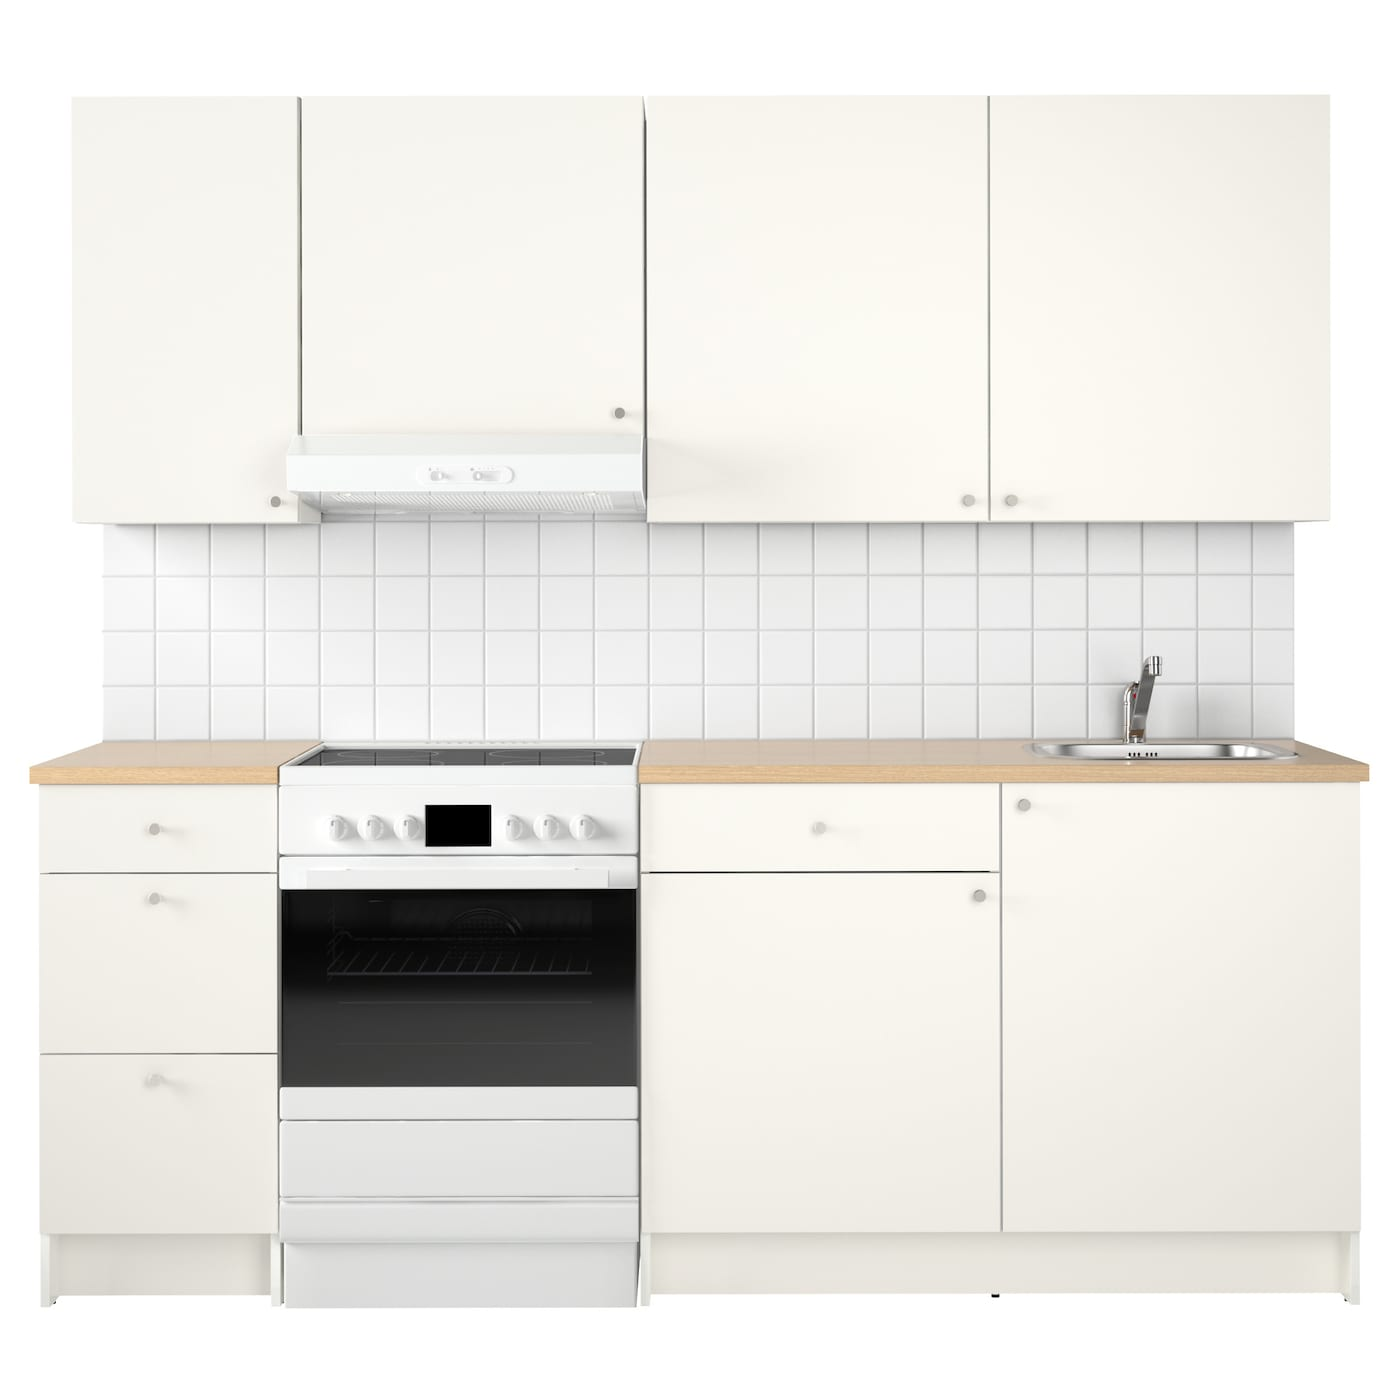 Modular kitchen furniture - Ikea Knoxhult Kitchen Stands Steady On Uneven Floors Because The Feet Are Adjustable